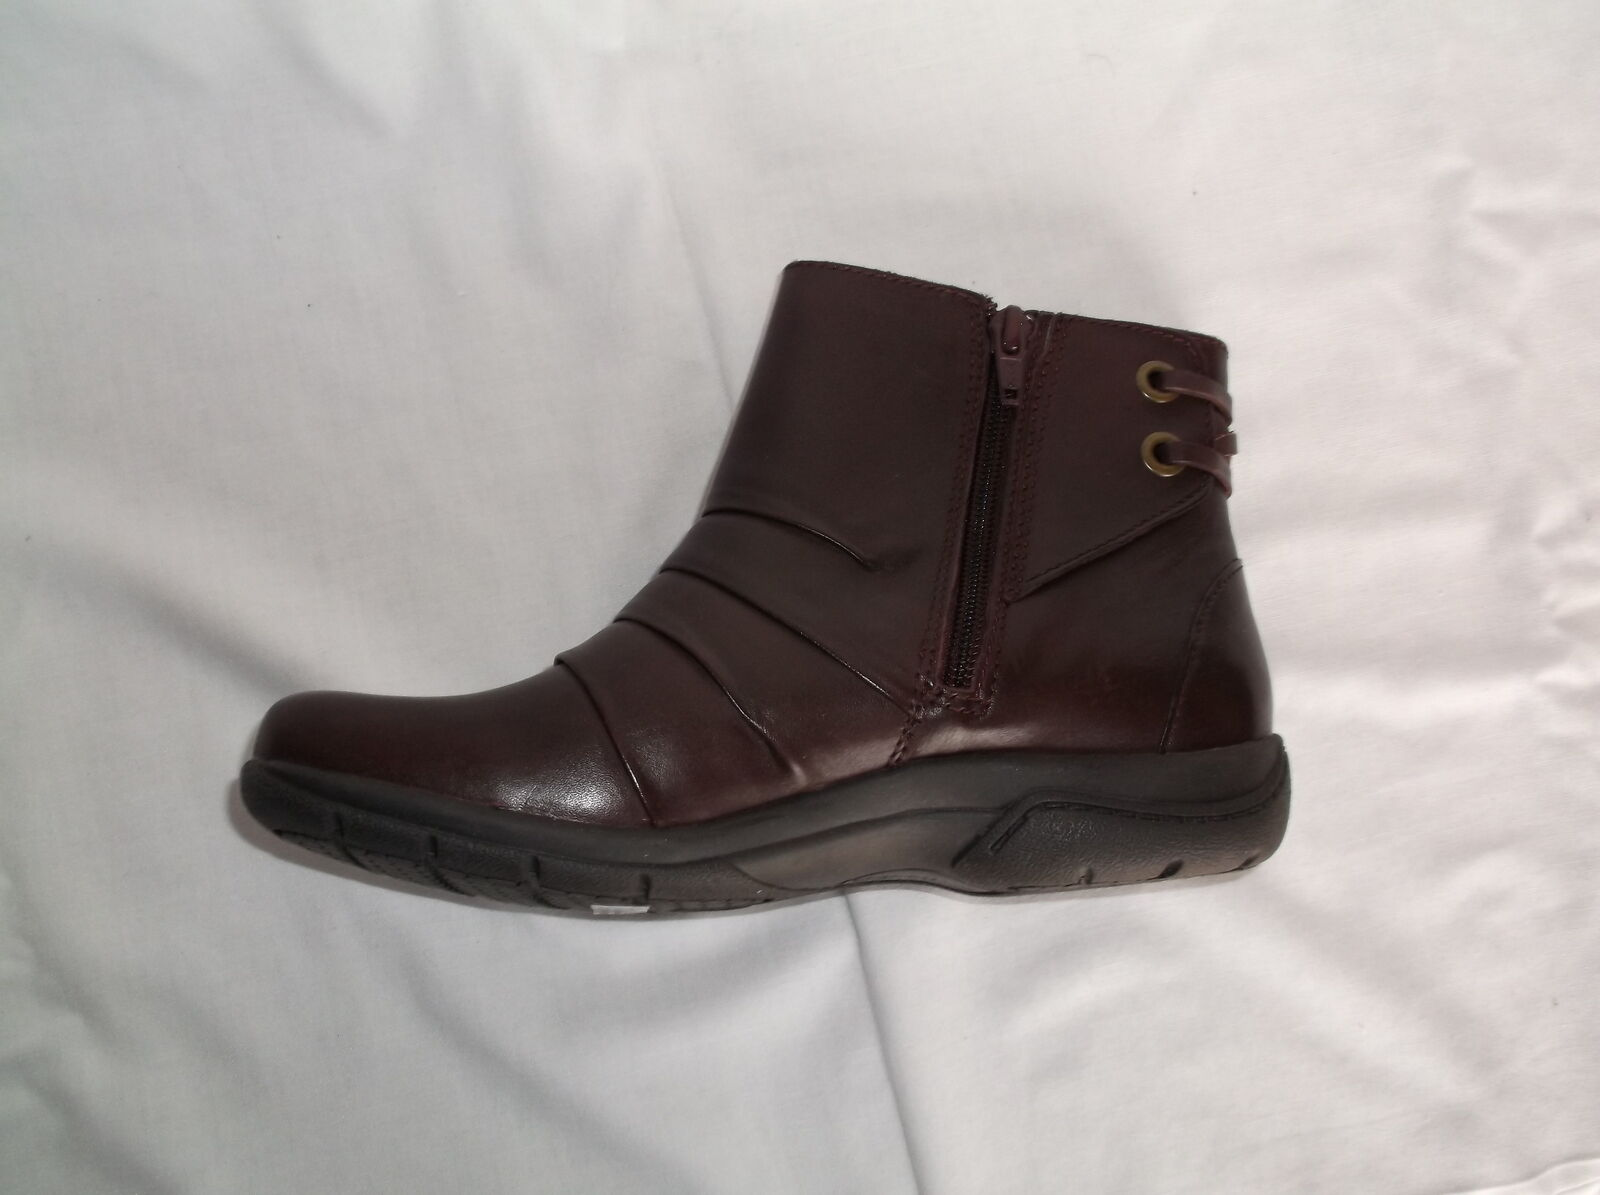 CLARKS CLARKS CLARKS BURGANDY LEATHER ANKLE SIDE ZIP BOOTS NEW IN BOX f68fb9